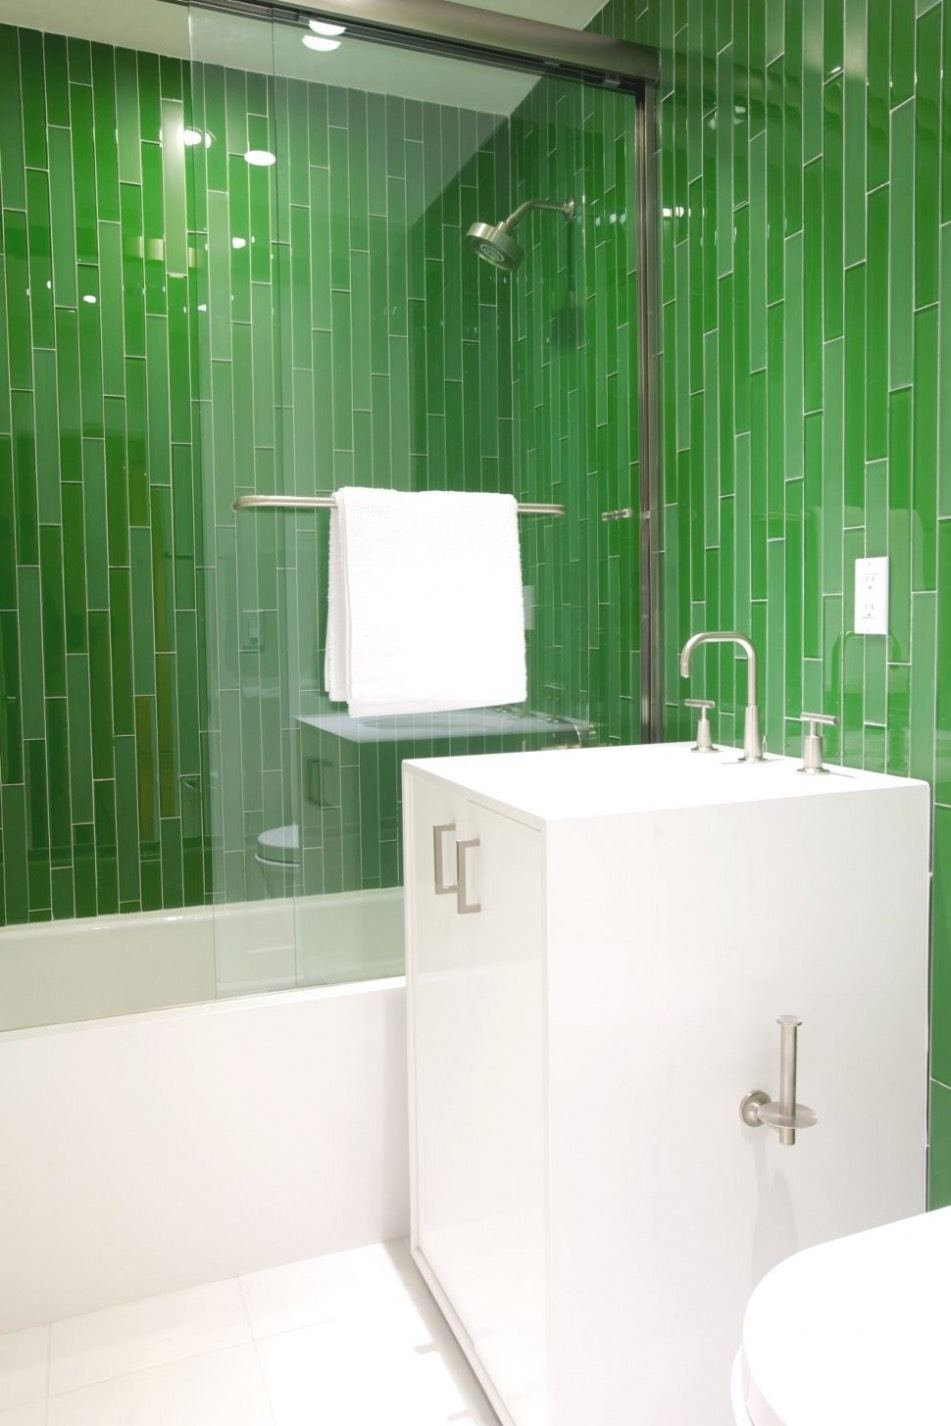 Long, thin green tiles in a vertical pattern around a white bathtub and vanity